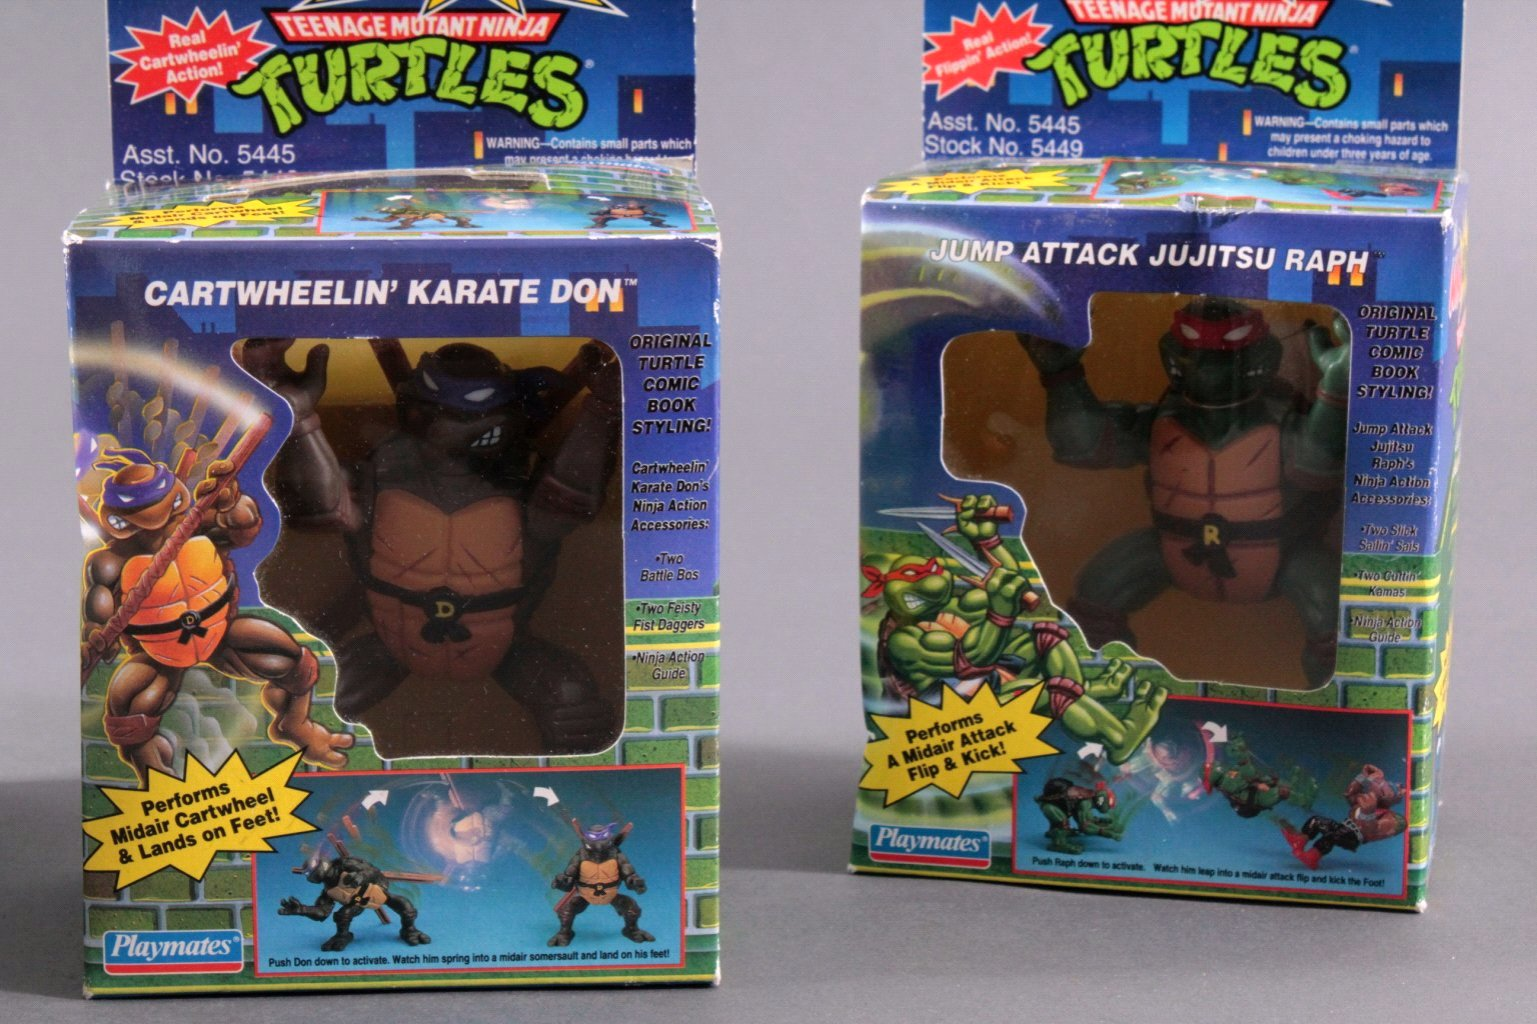 NINJA TURTLES Ninja Action Figuren 4 Stück-2